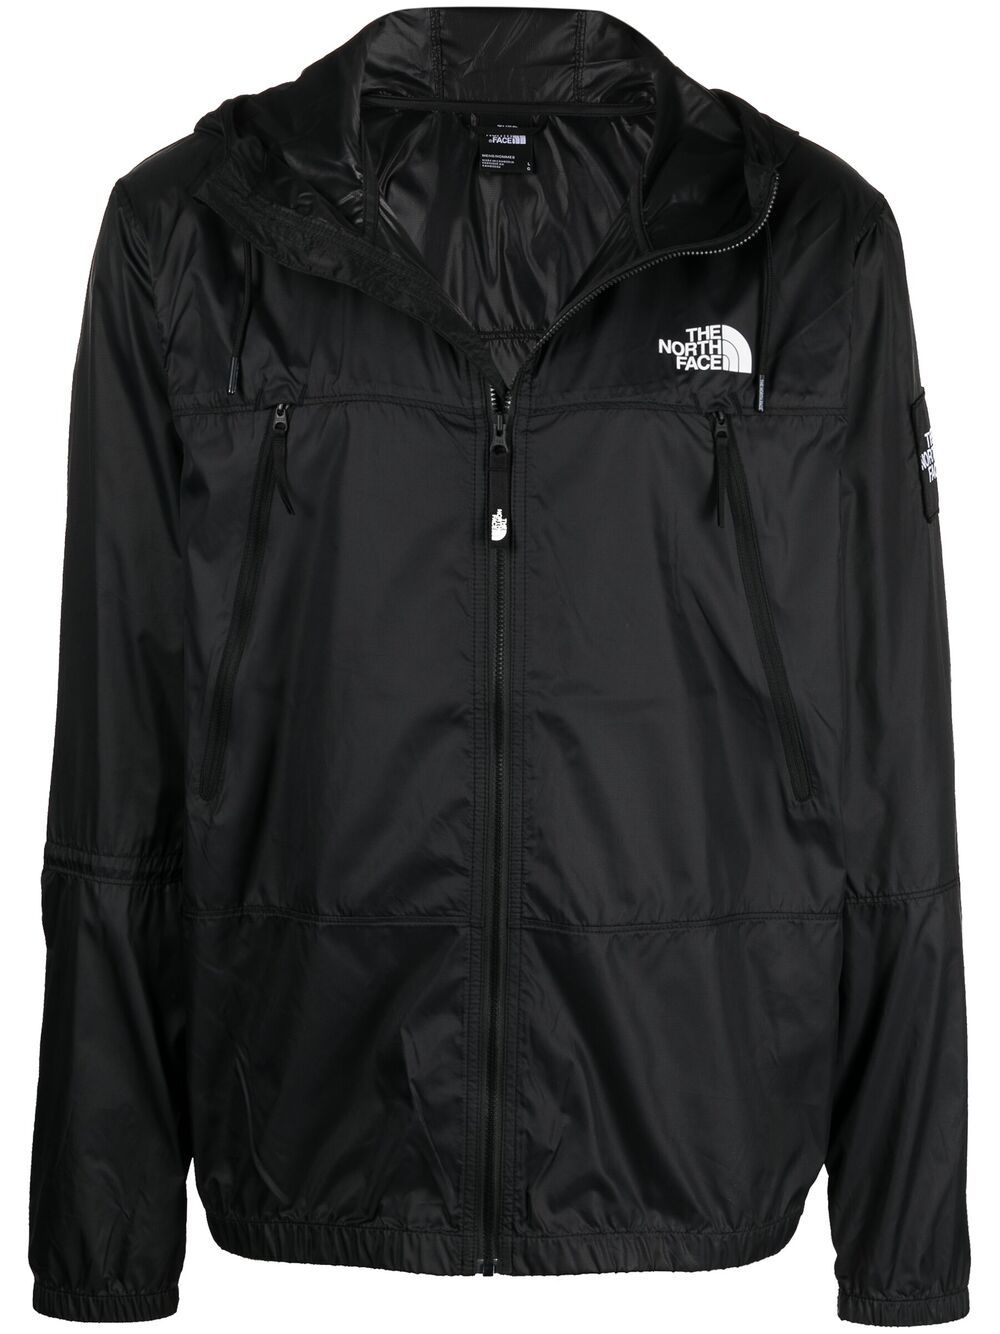 The North Face wind jacket man black THE NORTH FACE | Jackets | NF0A55BRJK31